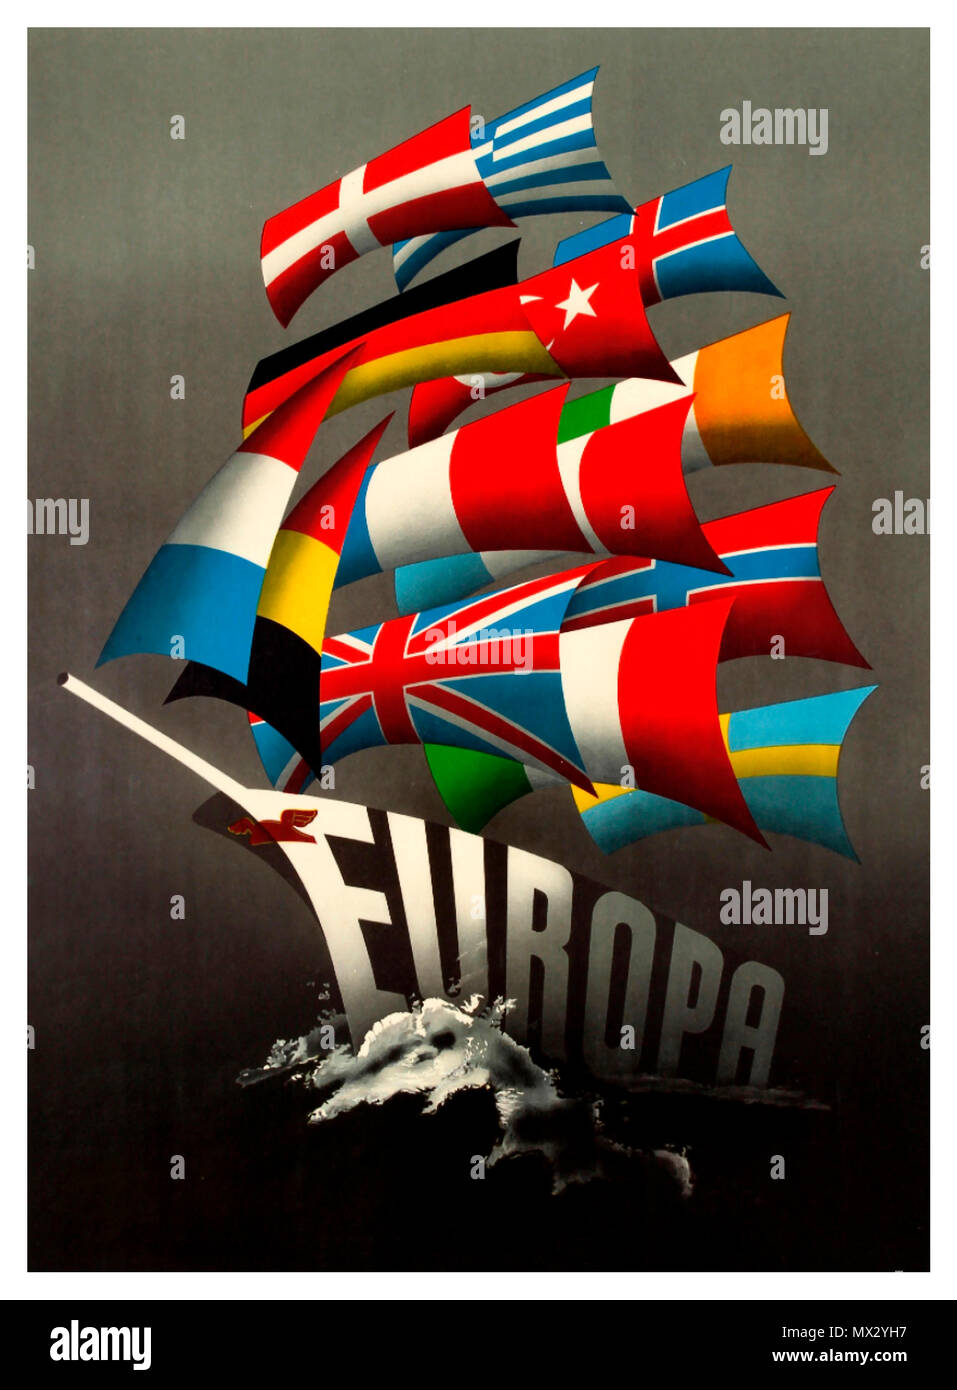 BREXIT THEME EUROPE HISTORY Vintage 1950's poster featuring a design by Dutch artist Reyn Dirksen entitled ' 'All Our Colours To The Mast' chosen as the winner of the Intra-European Cooperation for the Better Standard of Living Poster Contest held in 1950 to publicise  European Recovery Programme / Marshall Plan theme of cooperation and economic recovery after World War Two and to promote Western European cohesion. Stylised illustration showing a ship in full sail with the sea splashing up the colourful sails featuring the flags of each country and the word Europa / Europe forming - Stock Image